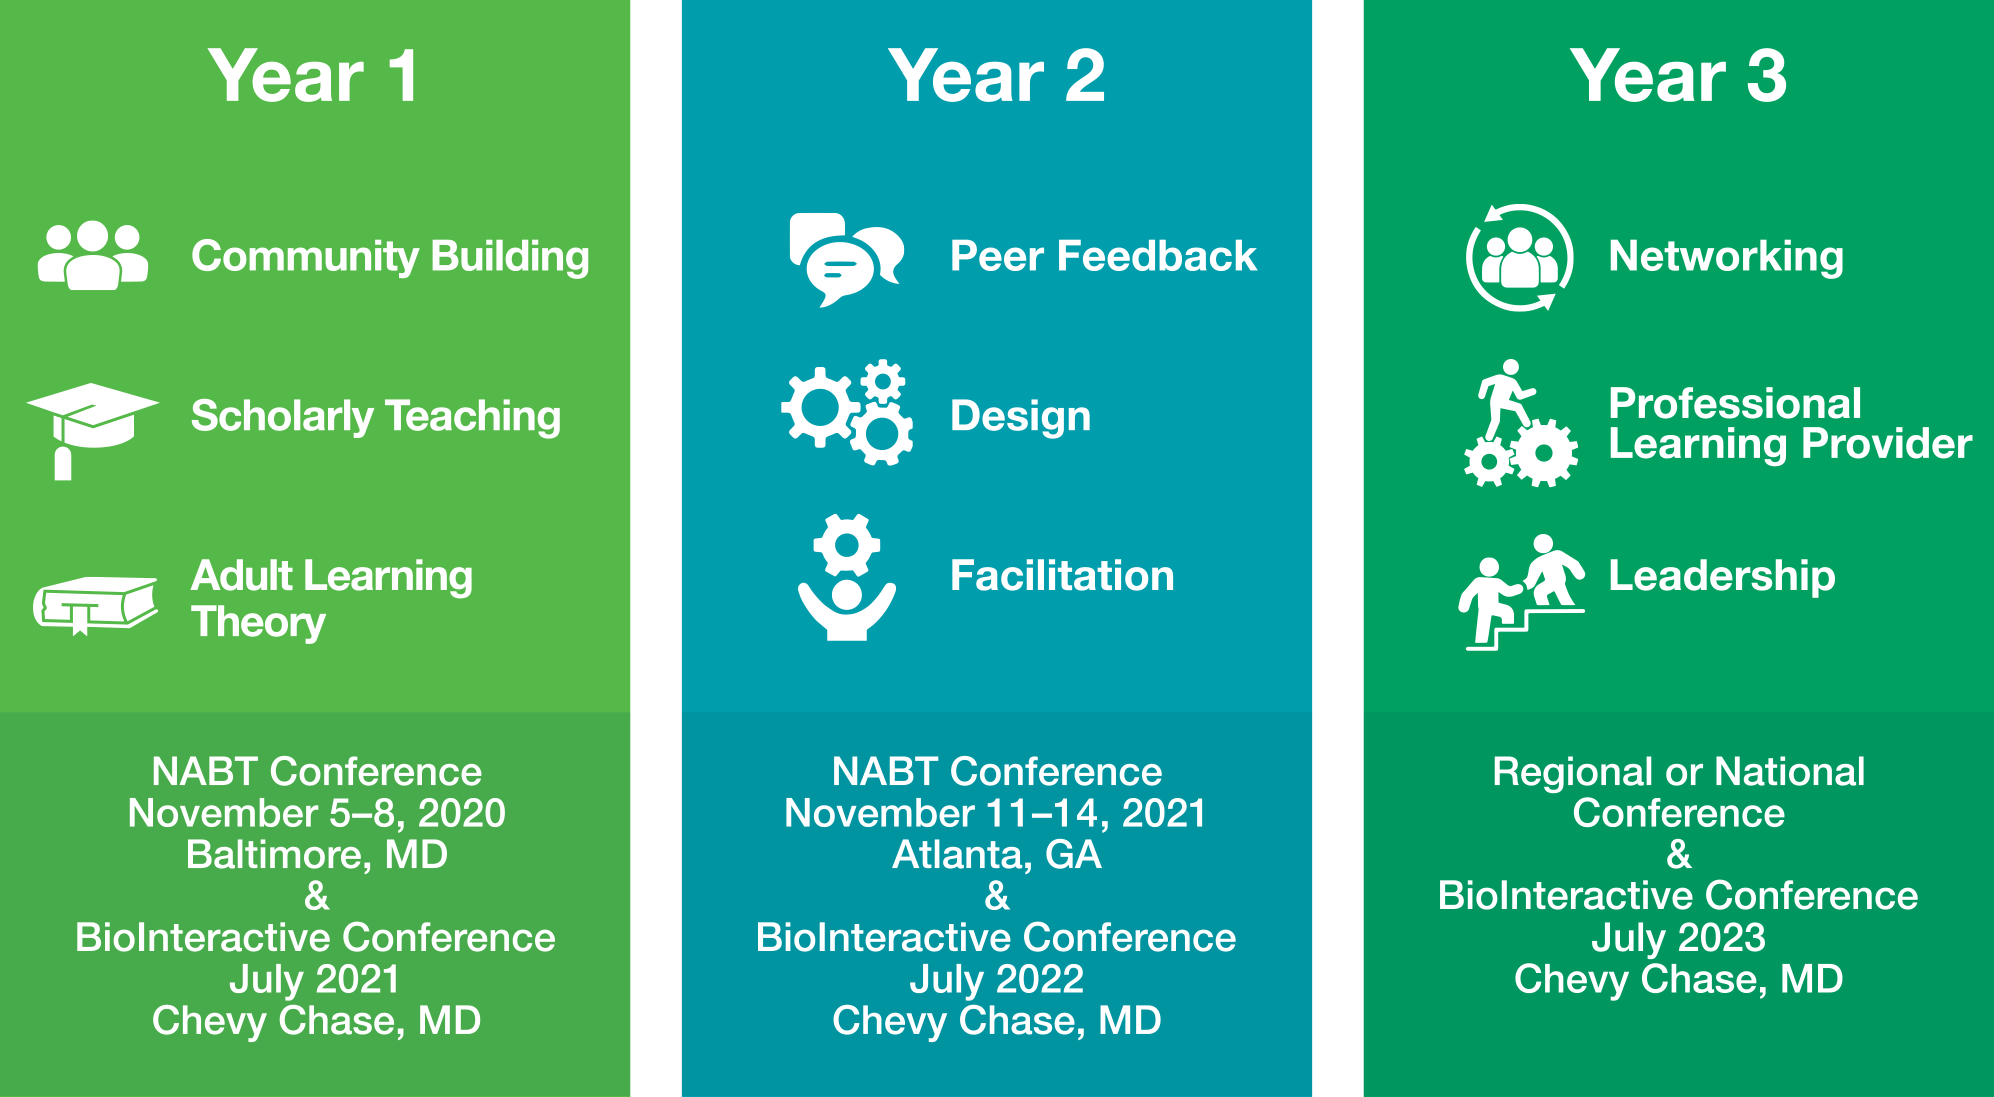 Year One topics: Community Building, Scholarly Teaching, and Adult Learning Theory. Year One closes with the NABT Conference, November 5-8, 2020, in Baltimore, MD, and the BioInteractive Academy Meeting, July 2021, in Chevy Chase MD. Year Two Topics: Peer Feedback, Design, and Facilitation. Year Two closes with the NABT Conference, November 11-14, 2021 in Atlanta GA, and the BioInteractive Academy, July 2022 in Chevy Chase MD. Year 3 topics: Networking, Professional Learning Provider, and Leadership. Year 3 closes with presenting at a Regional or National Conference, and BioInteractive Academy, July 2023, Chevy Chase MD